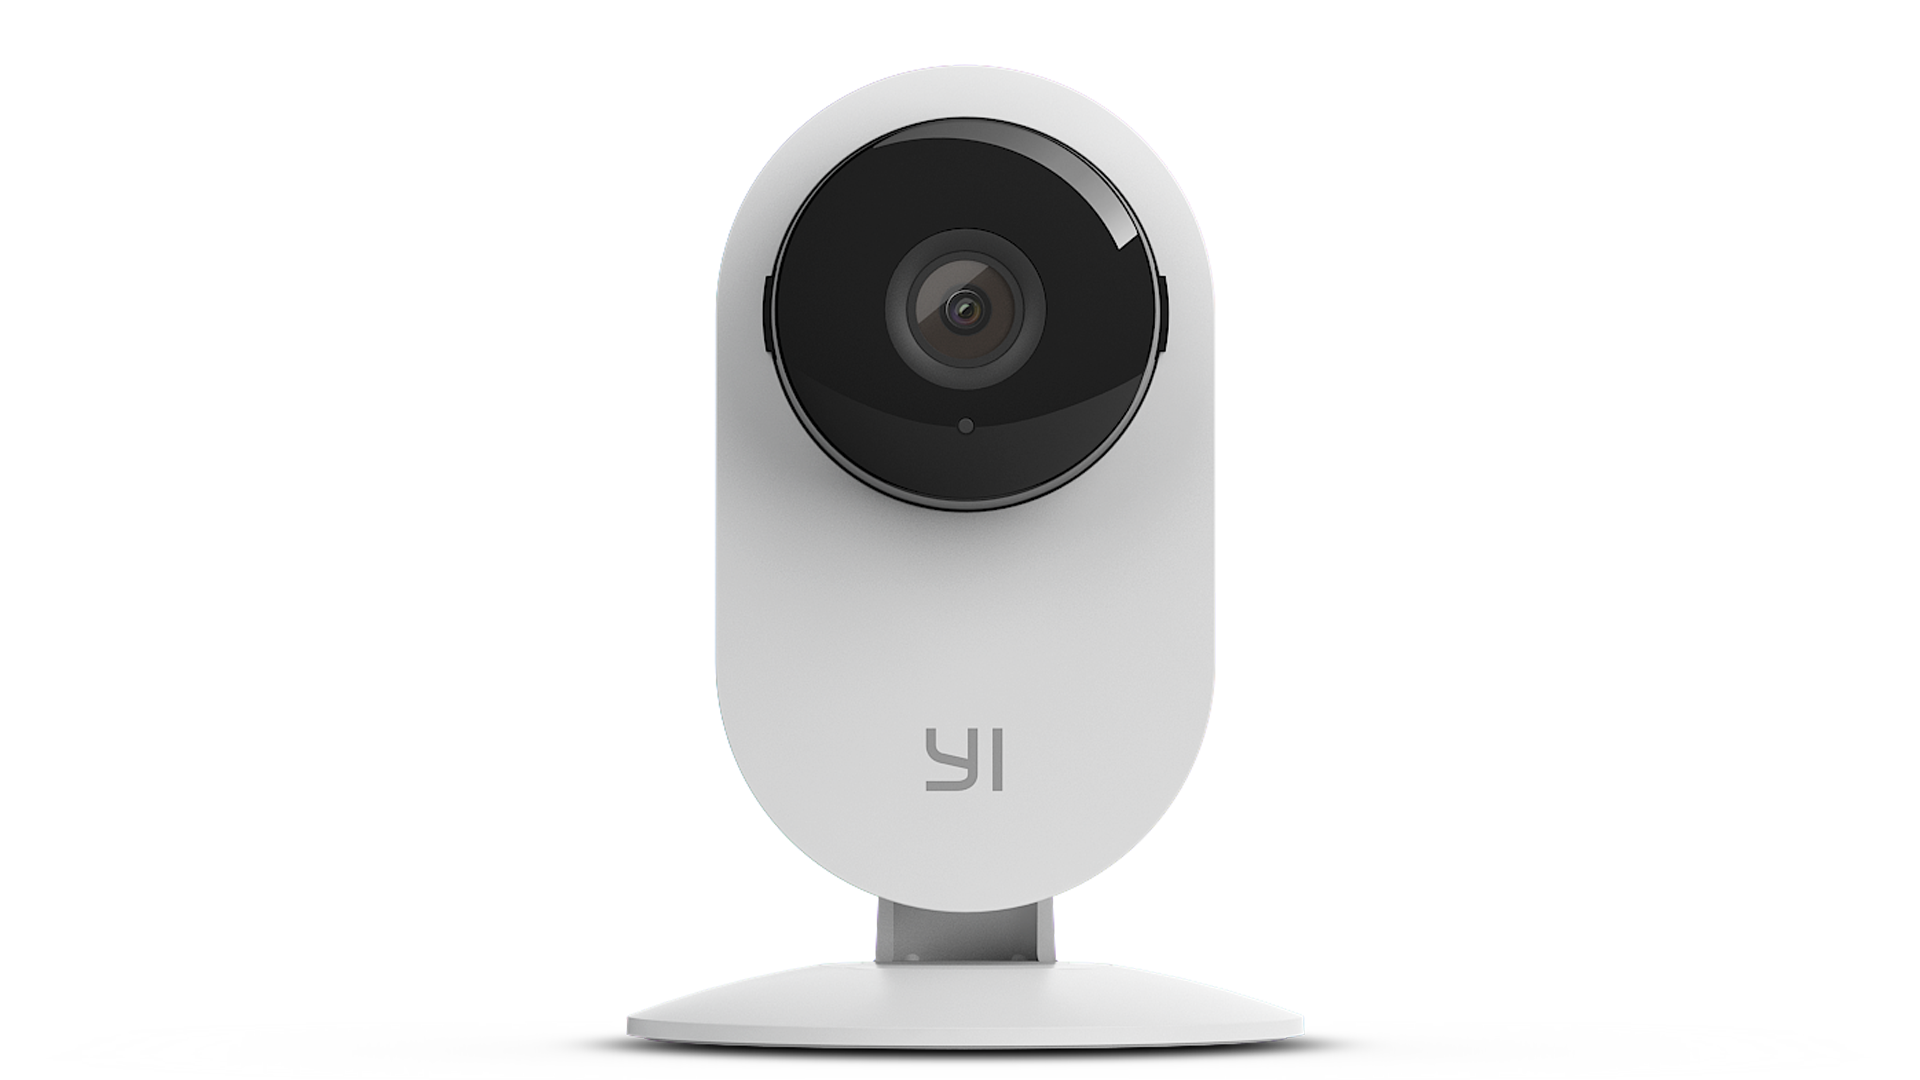 YI Y20 DOME CAMERA 1080p